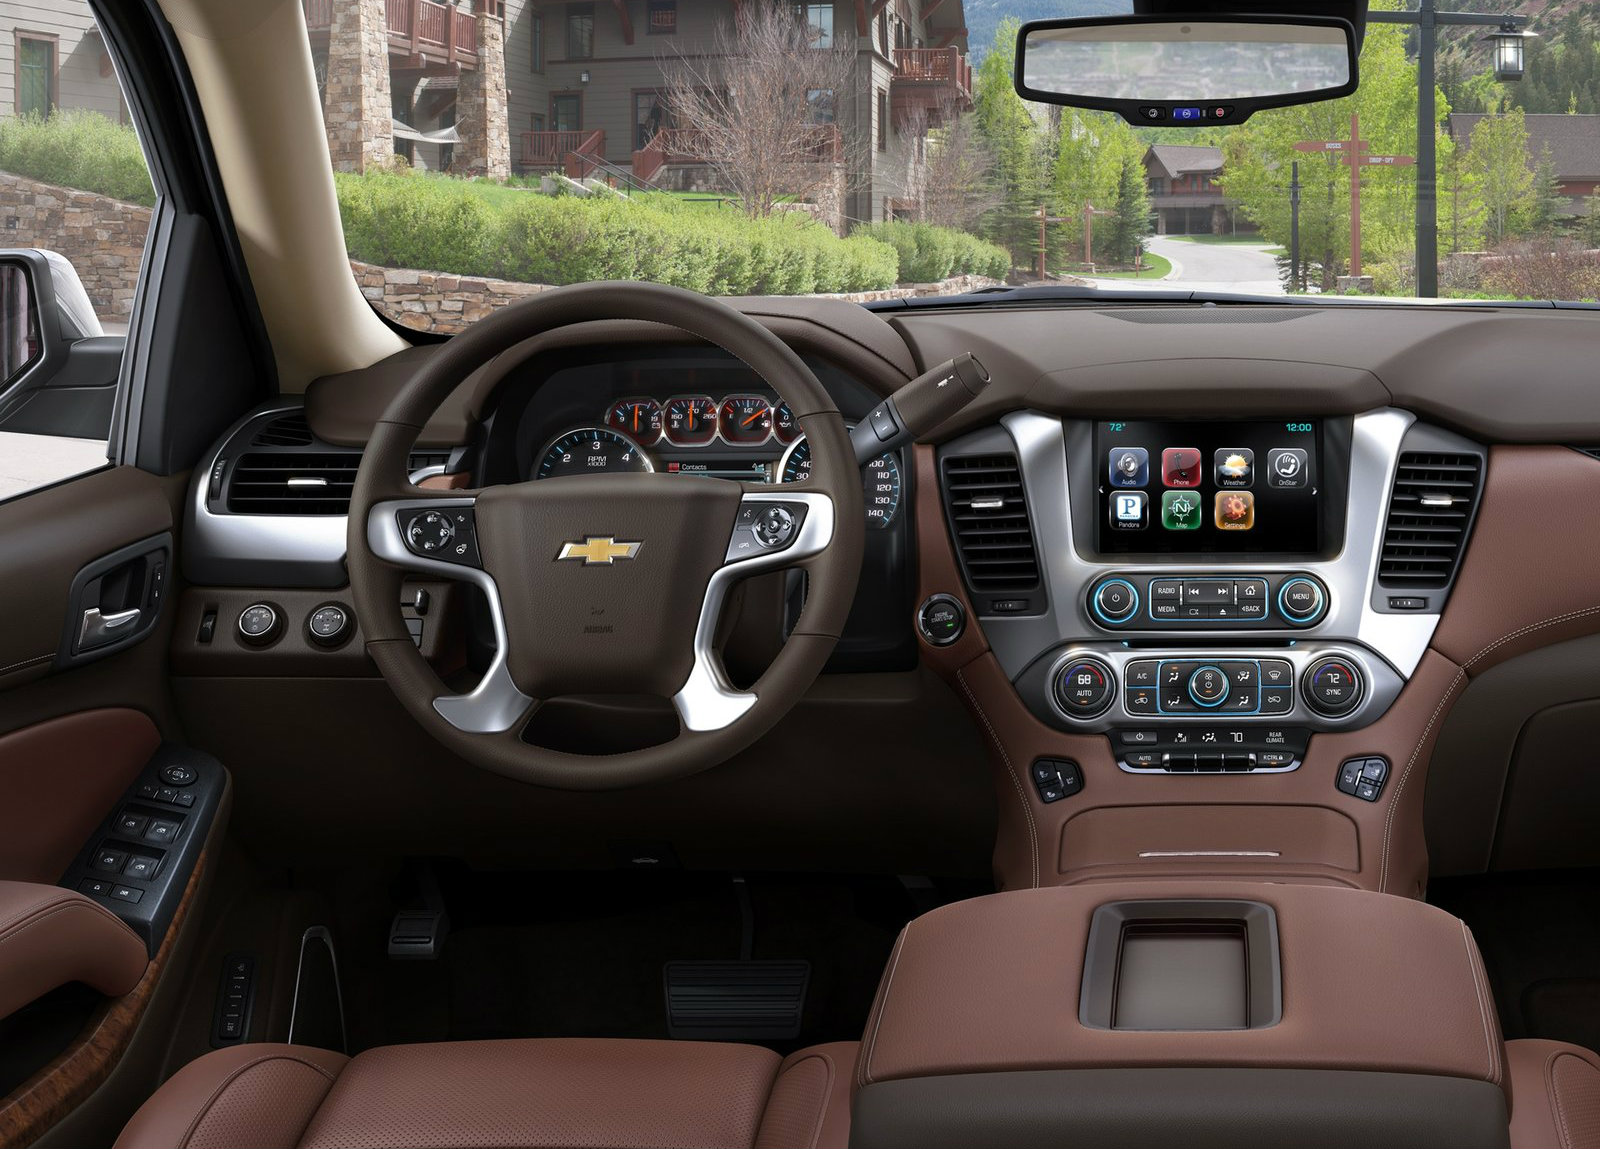 2017 Silverado Colors >> GM Full-Size SUVs Updated for the 2015i Model Year - autoevolution